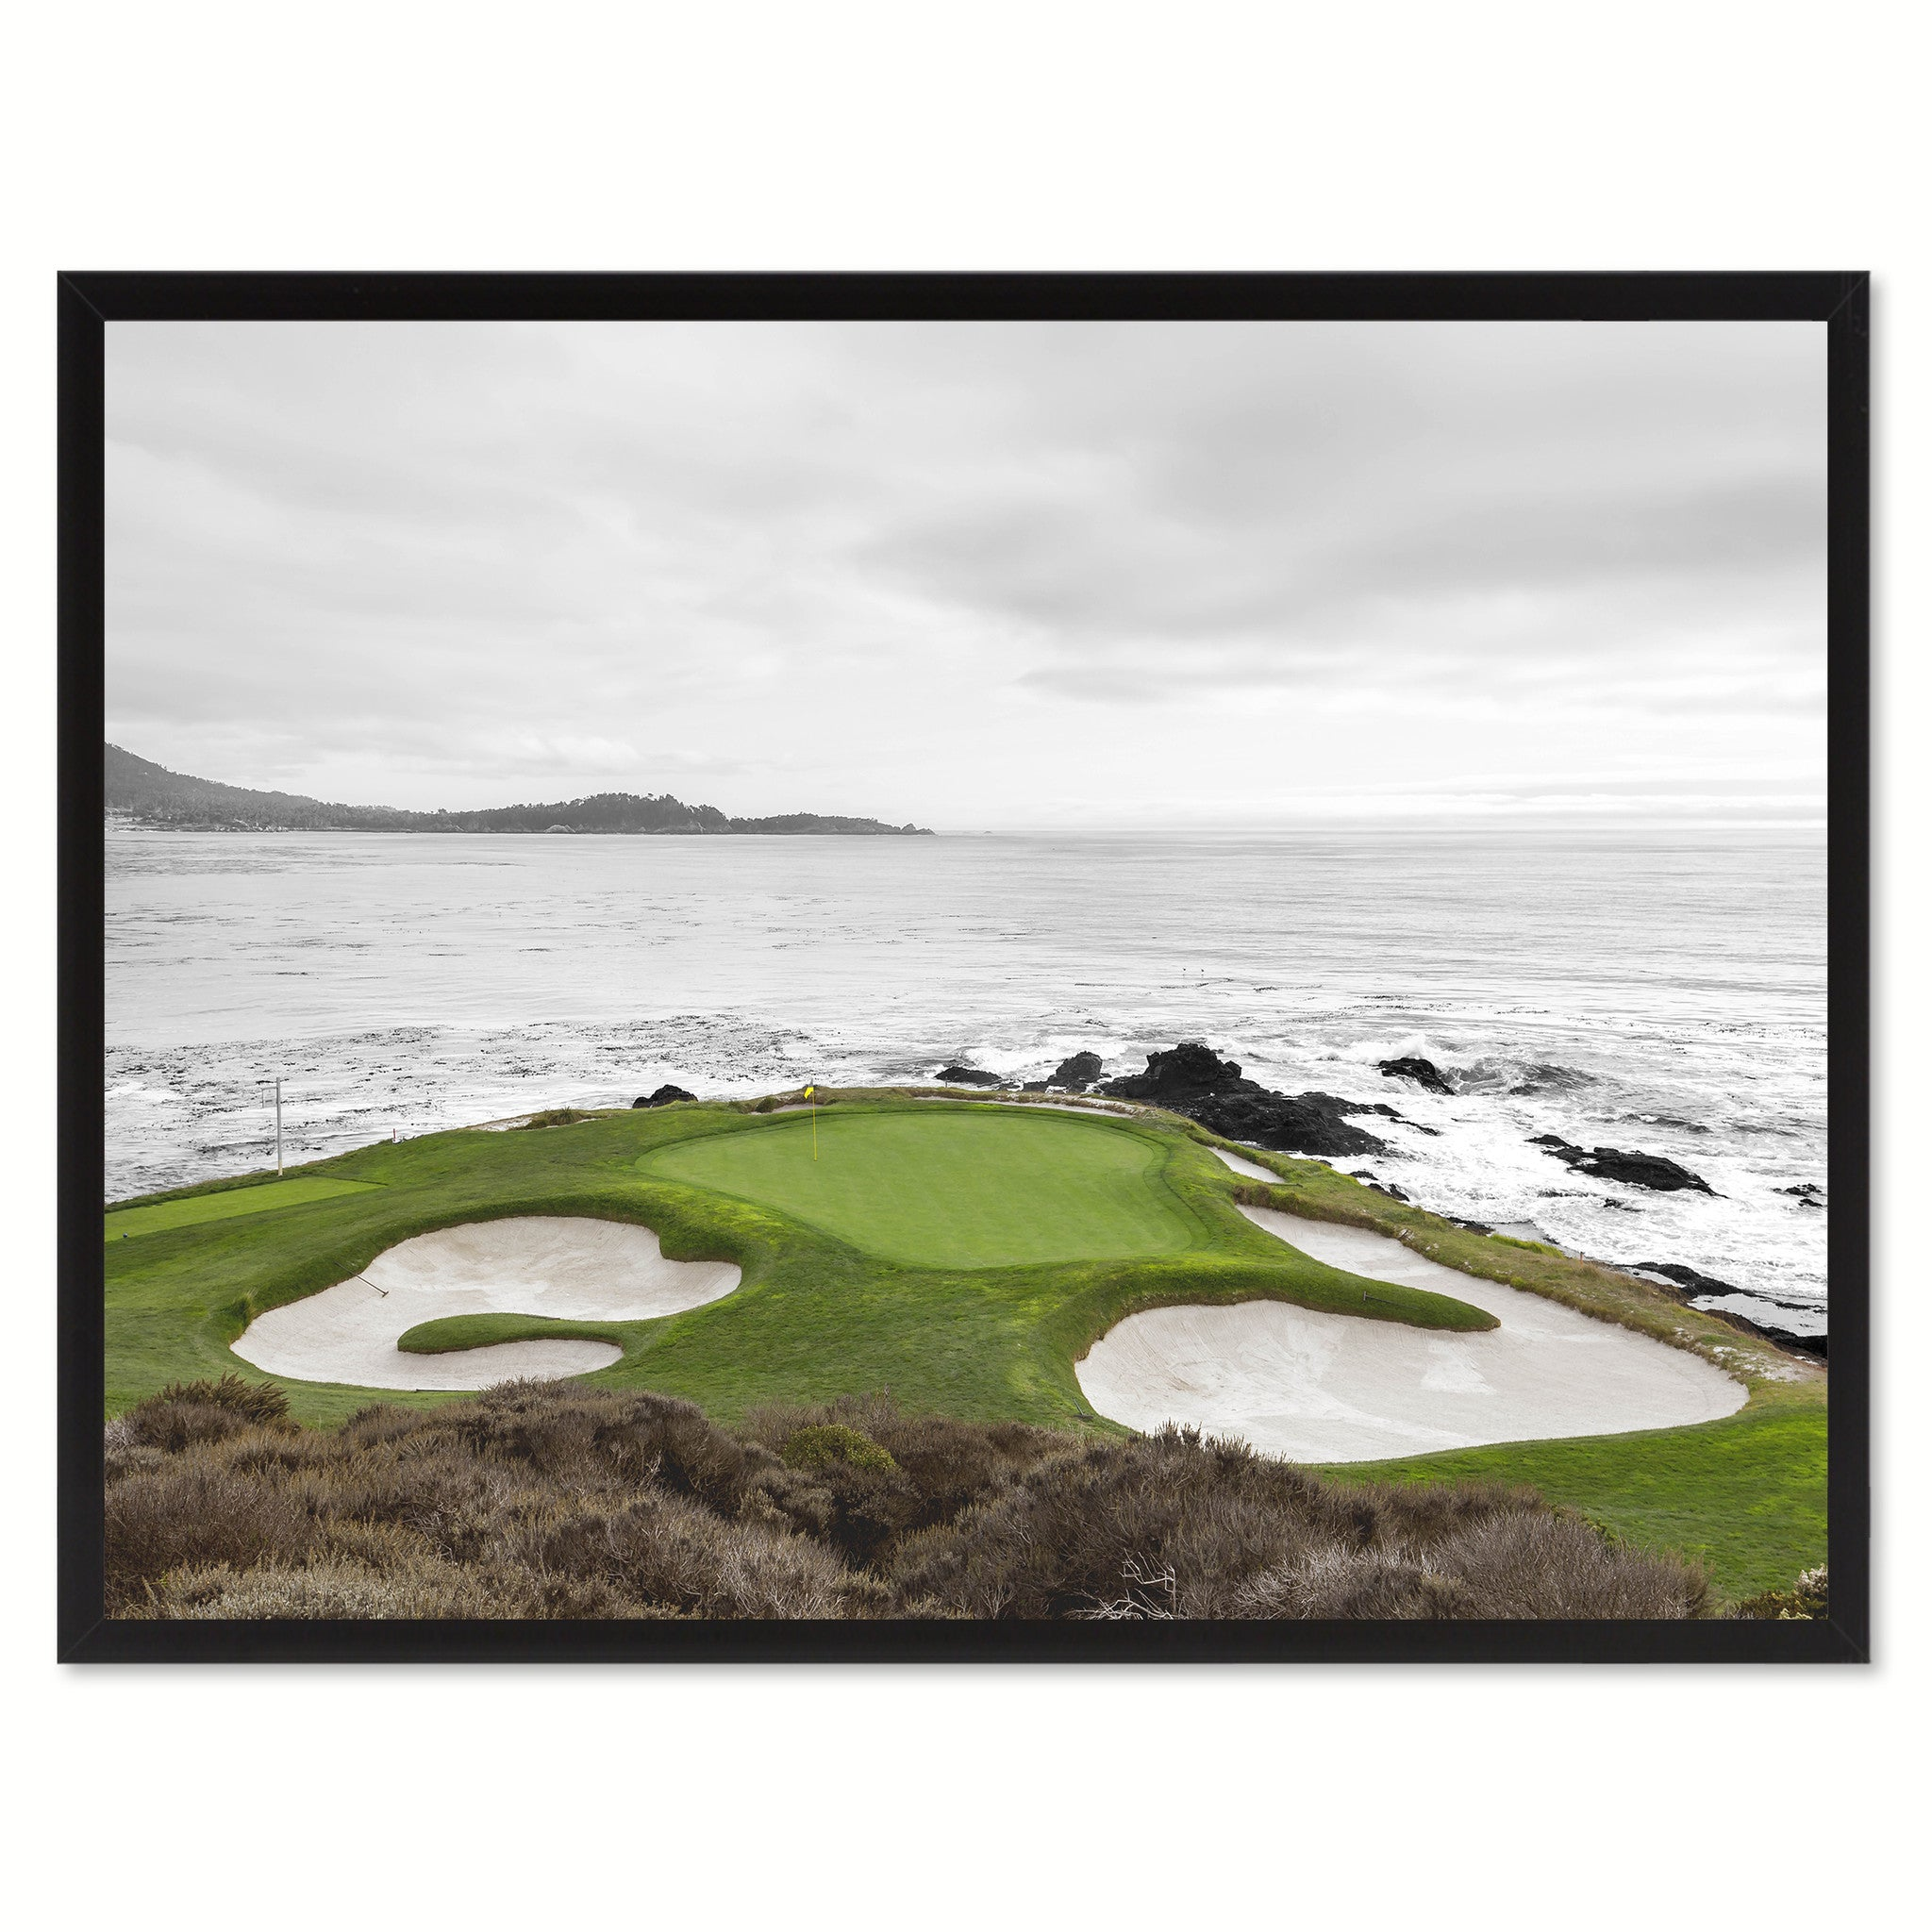 Pebble Beach CA Golf Course Photo Canvas Print Pictures Frames Home Décor Wall Art Gifts